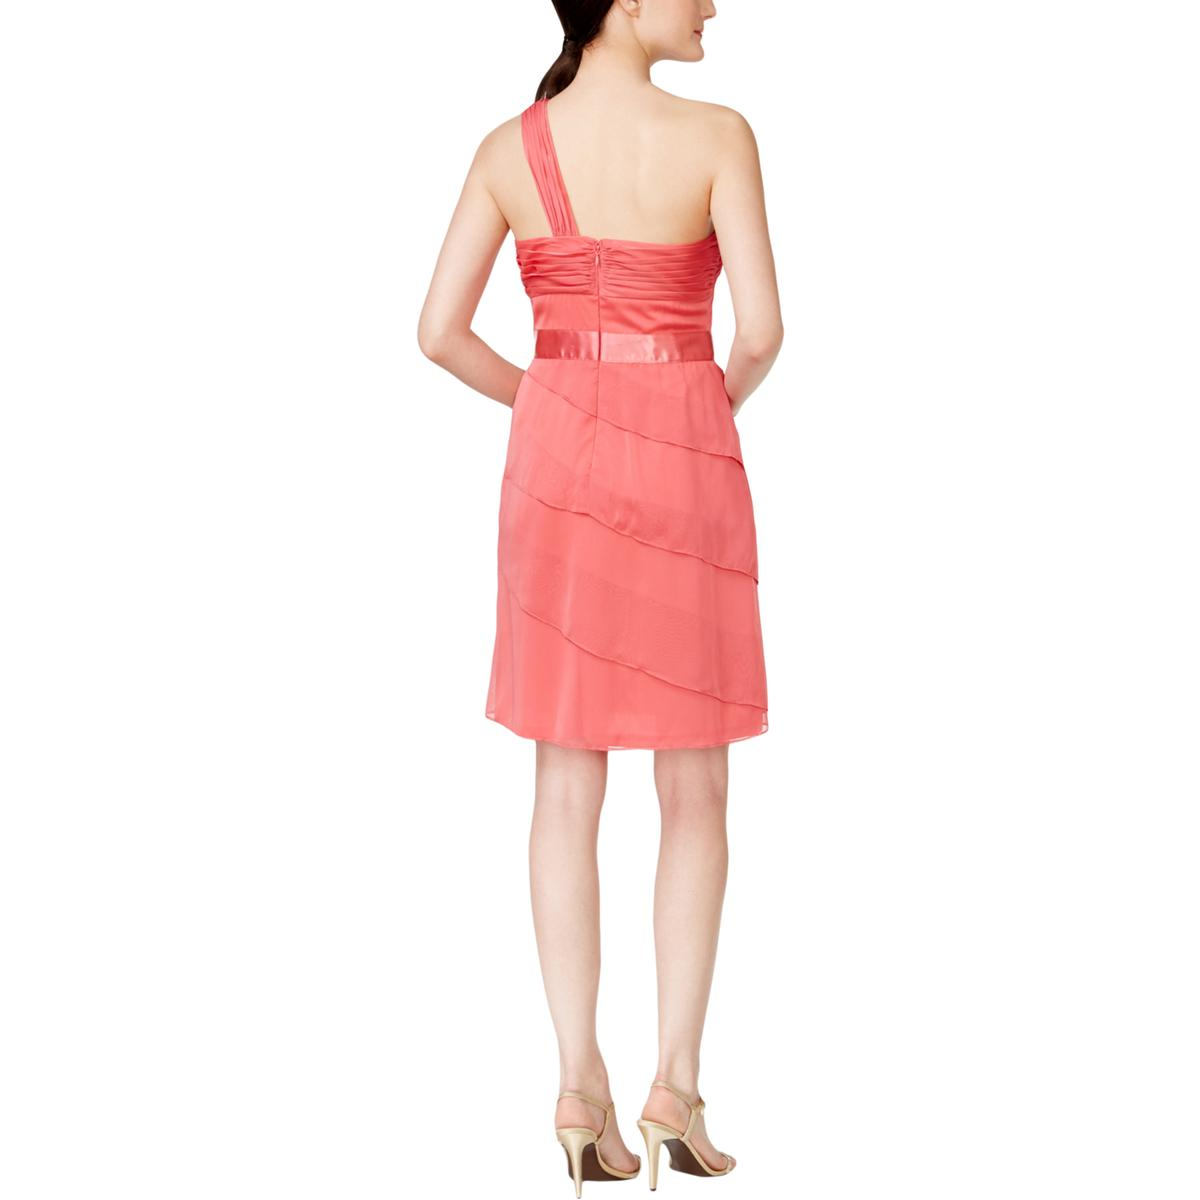 Adrianna-Papell-Womens-Tiered-One-Shoulder-Party-Cocktail-Dress-BHFO-6662 thumbnail 17